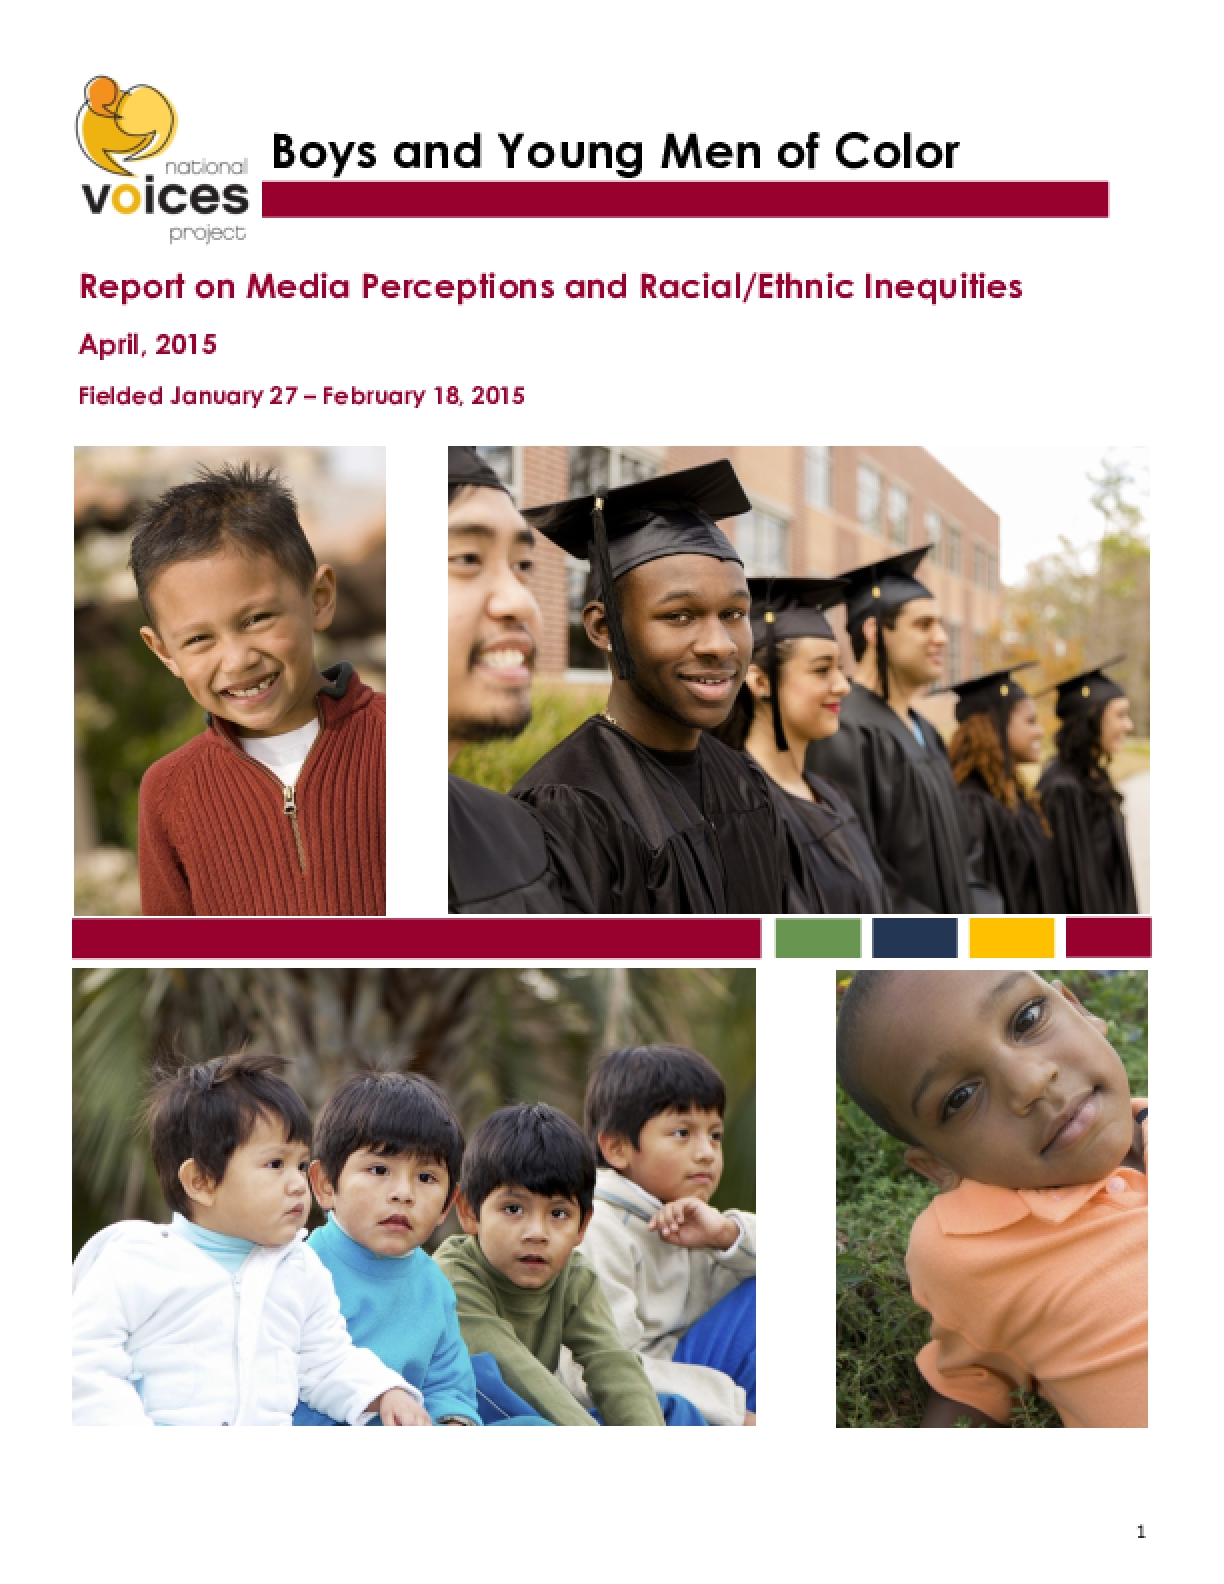 Boys and Young Men of Color: Report on Media Perceptions and Racial/Ethnic Inequities